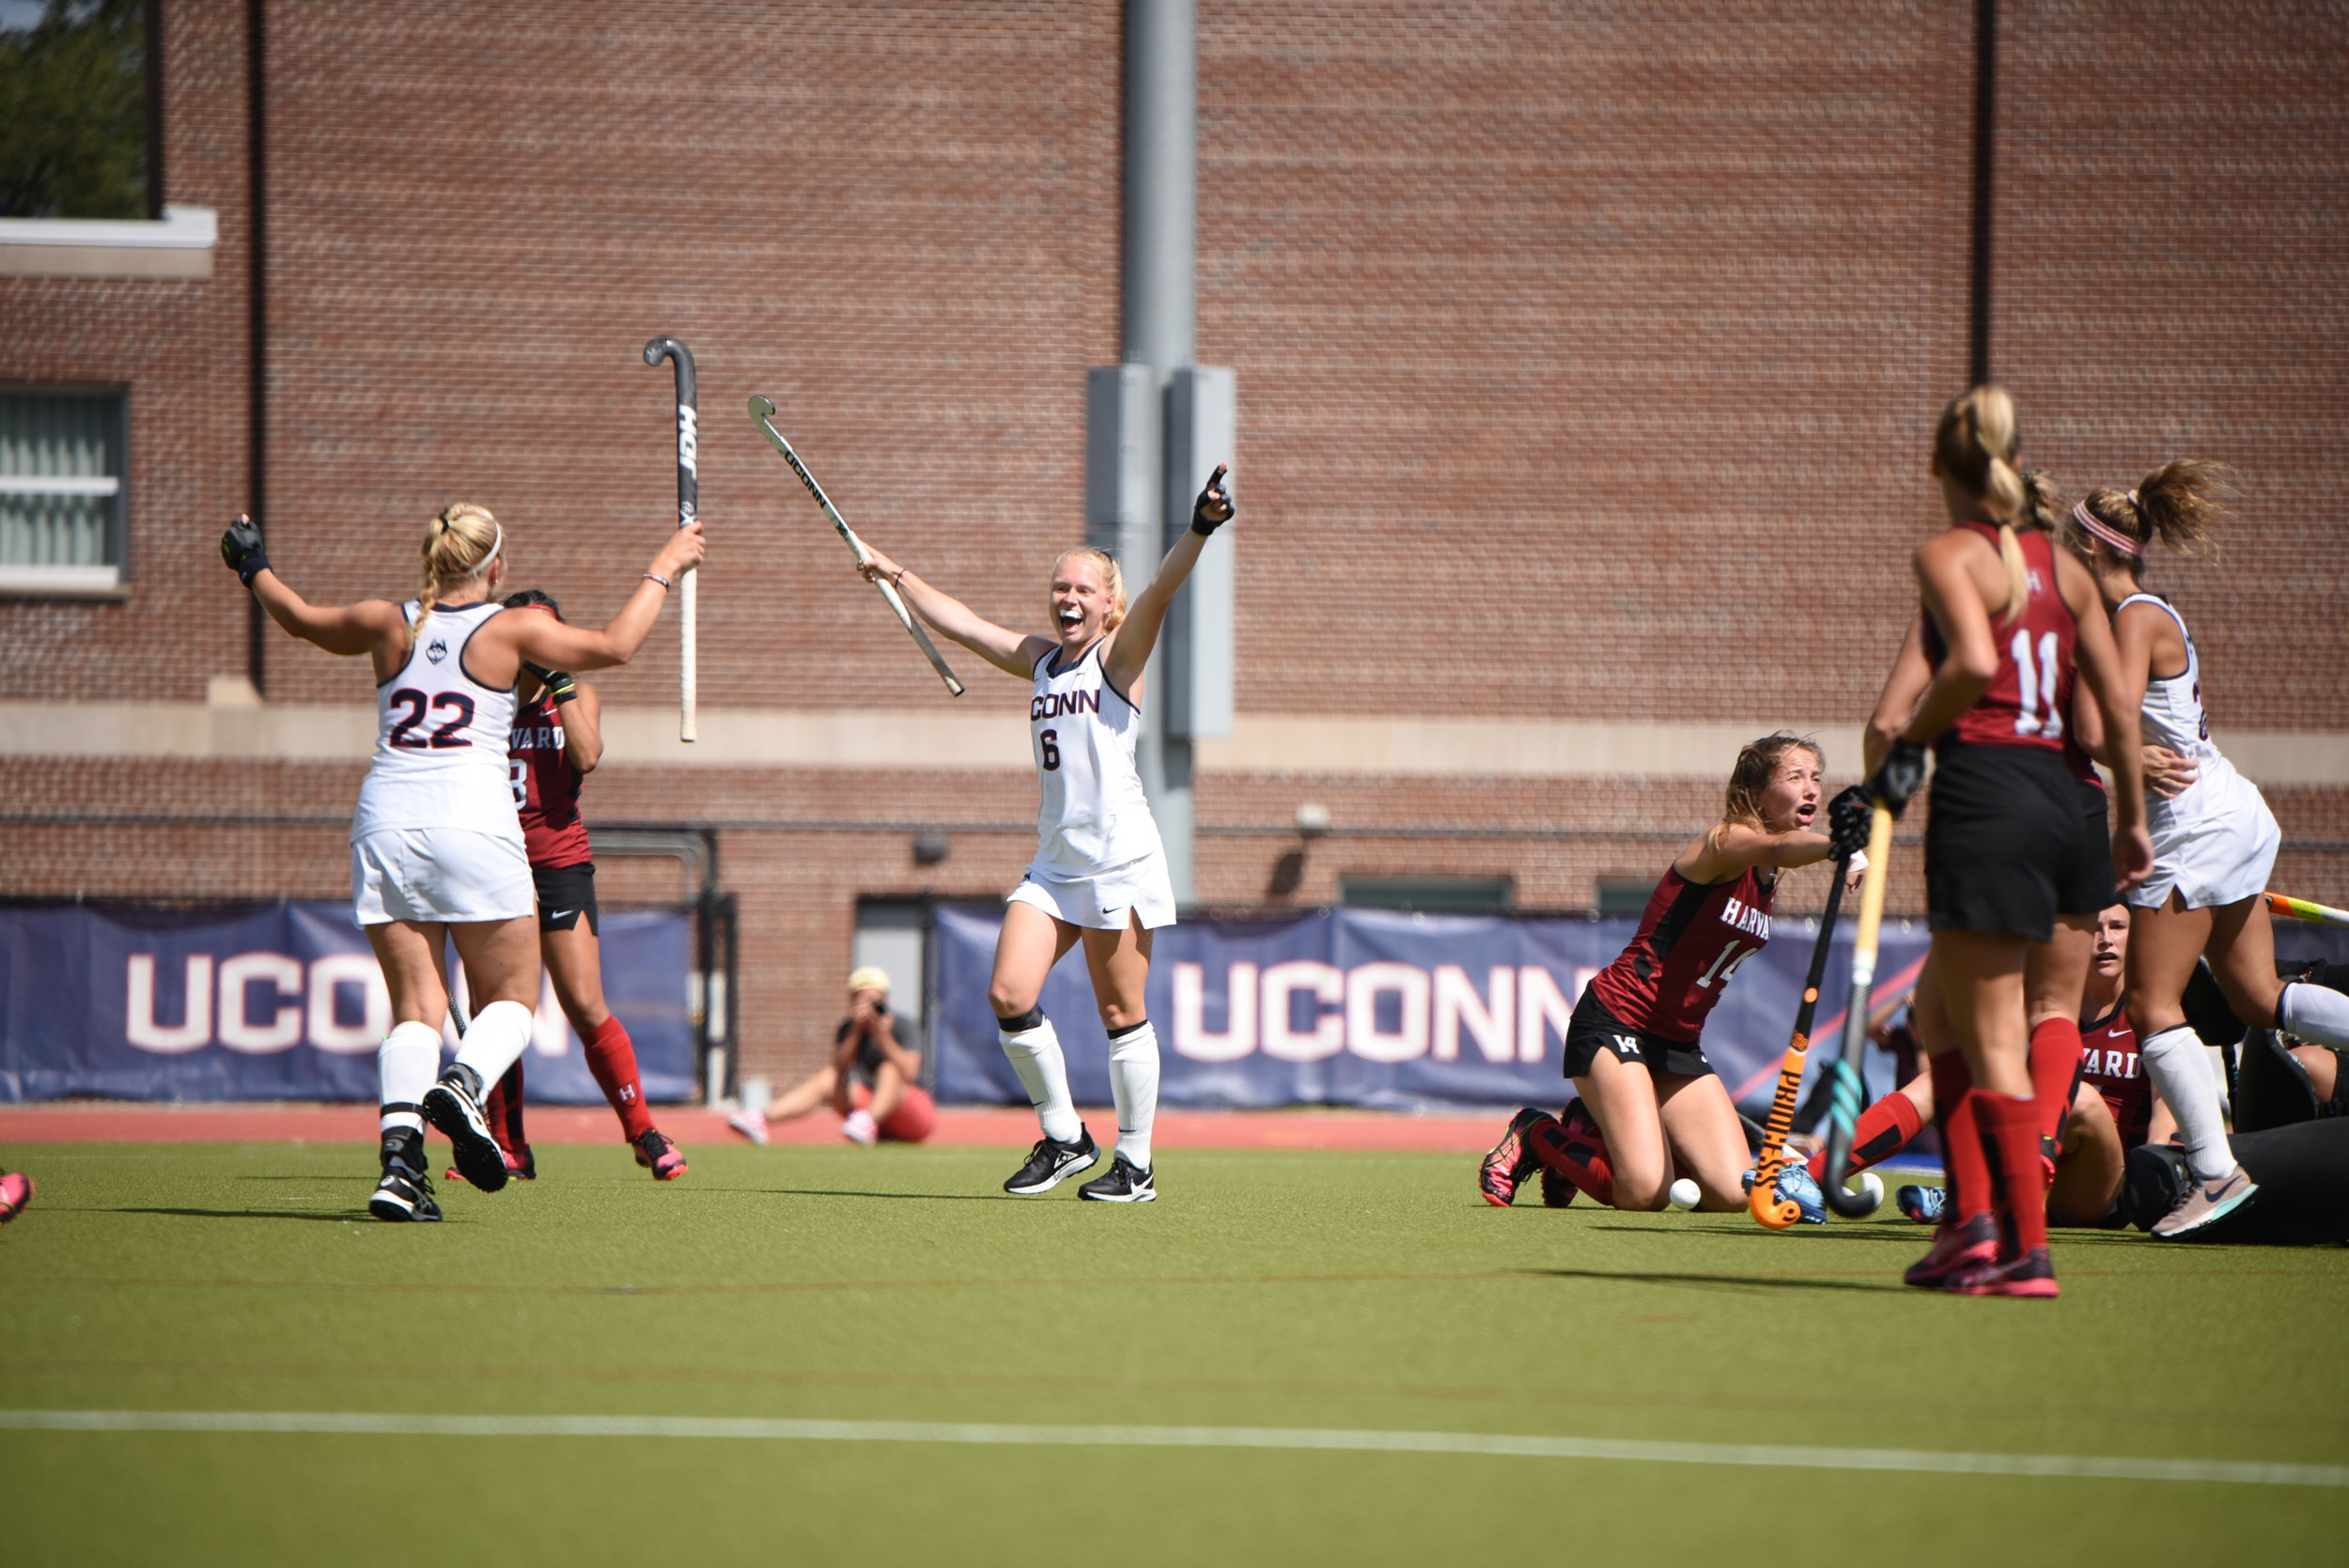 It's been a phenomenal start for the UConn field hockey team, following up last weekend's 2-0 performance in Stanford with two more ranked wins in Storrs this weekend against No. 19 Rutgers and No. 6 Harvard.  Photo by Charlotte Lao, Photo Editor / The Daily Campus.